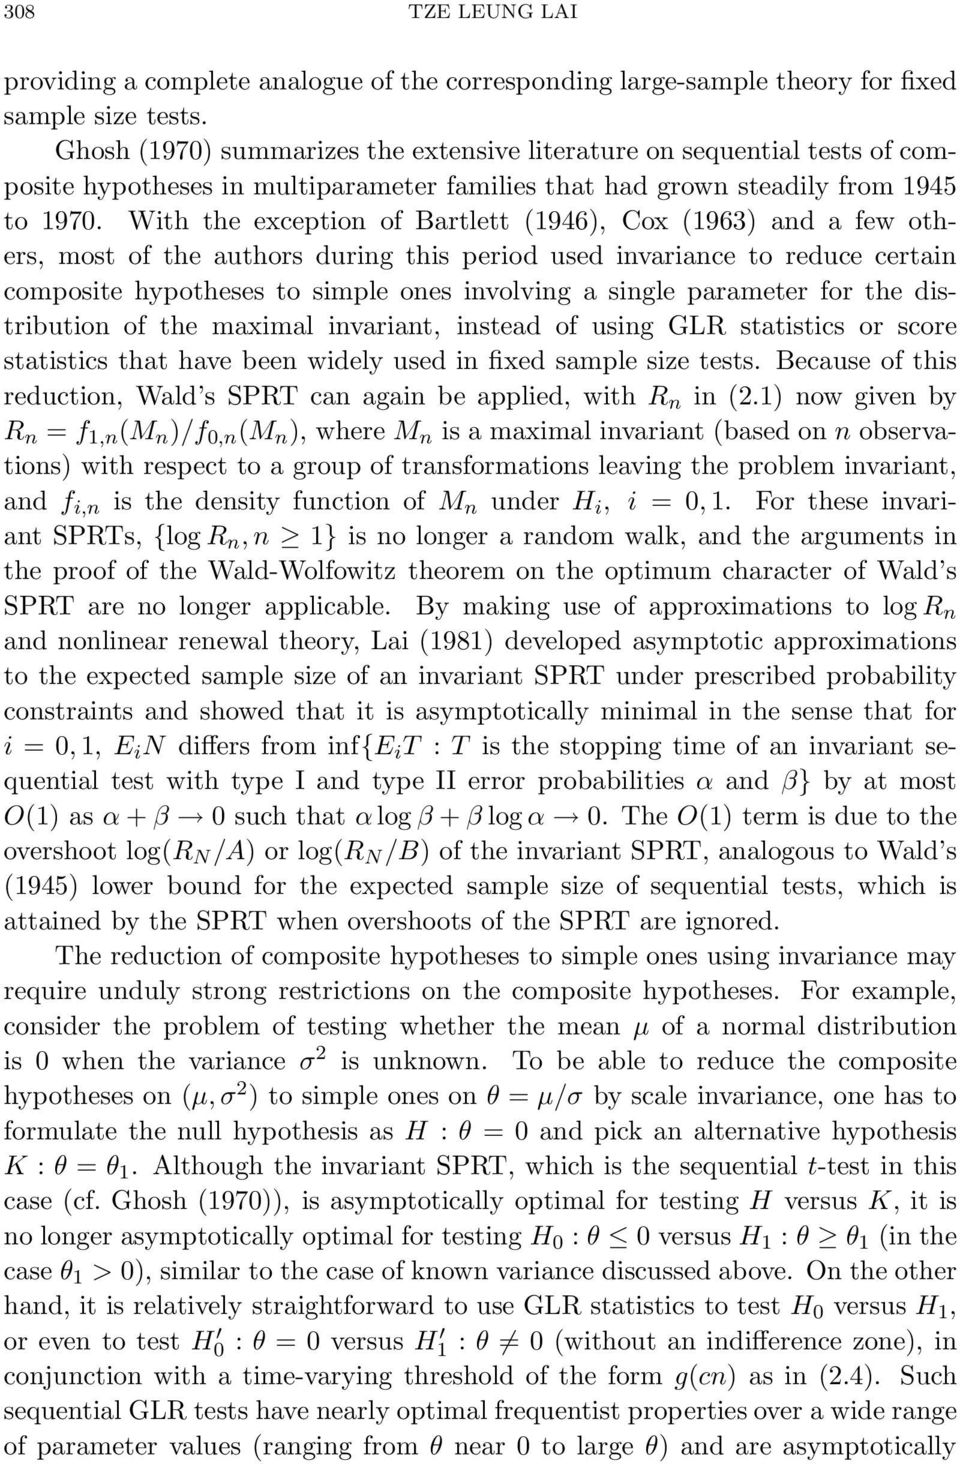 With the exception of Bartlett (1946), Cox (1963) and a few others, most of the authors during this period used invariance to reduce certain composite hypotheses to simple ones involving a single